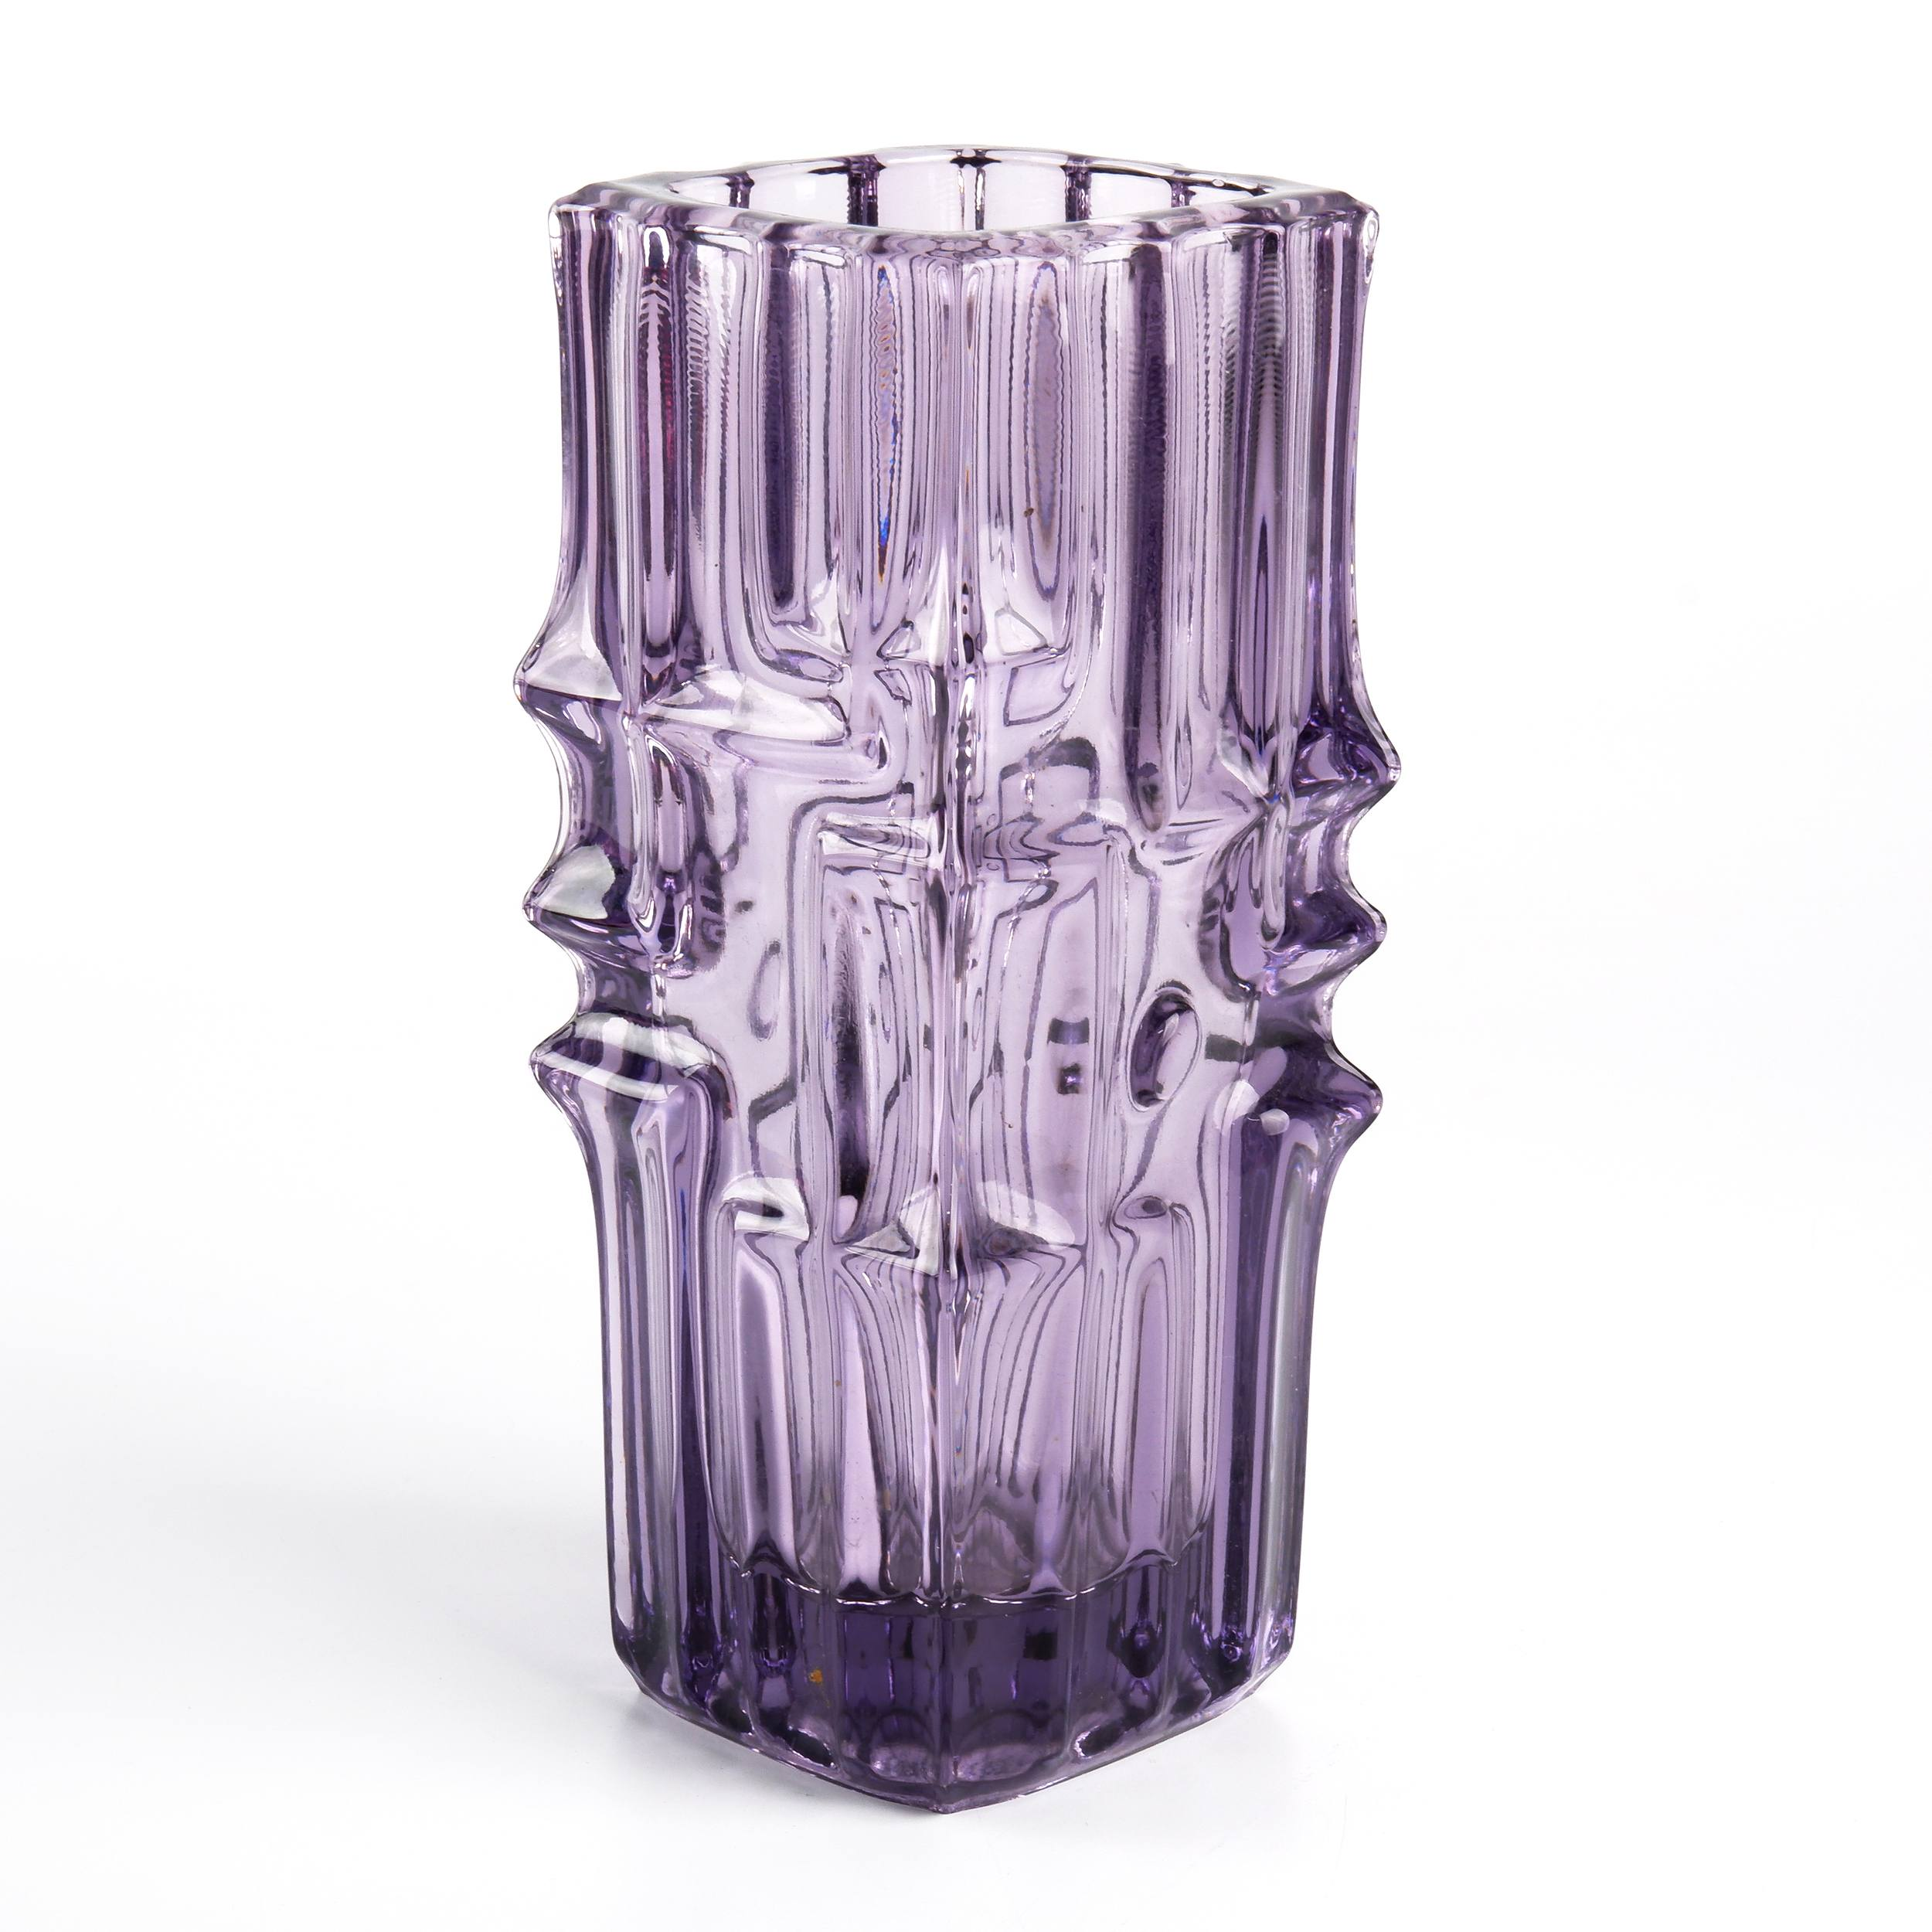 'Retro Purple Moulded Glass Vase by Vladislav Urban for Risico Glasswork Sklo Union, Circa 1967'